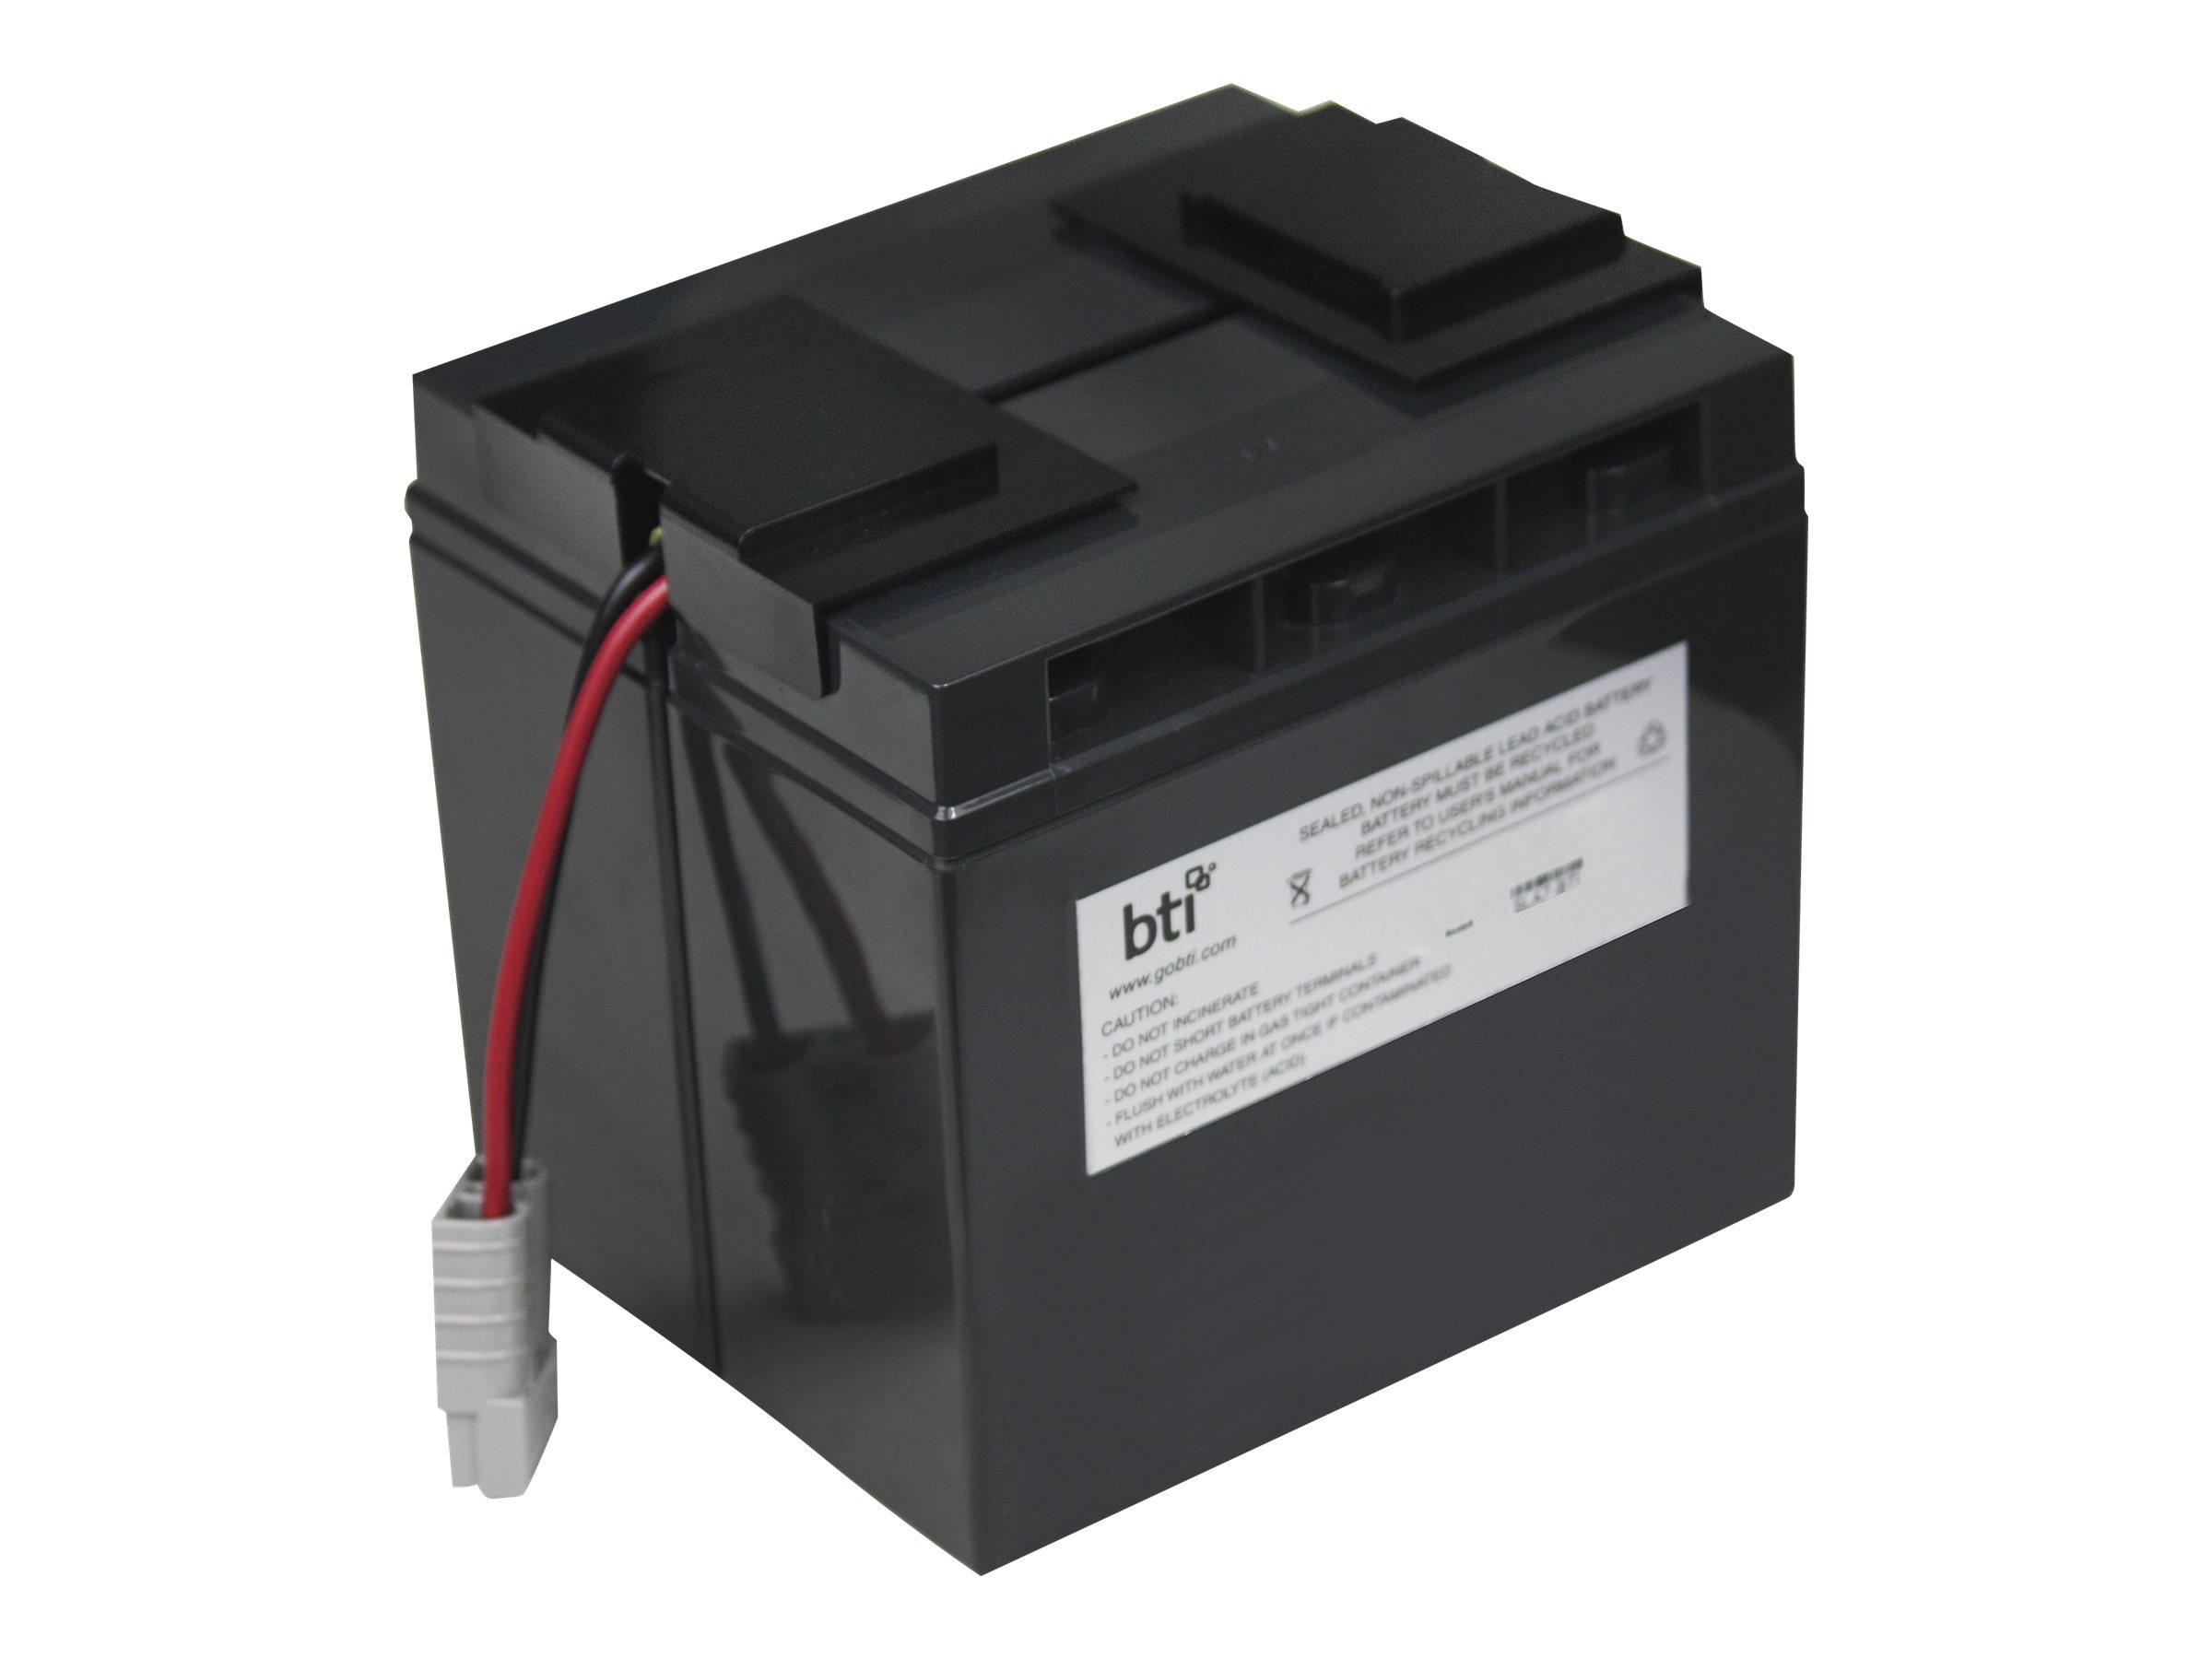 BTI Replacement Battery, RBC7 for APC SU700XL, SU1000XL, BP1400, SU1400 Models, RBC7-SLA7-BTI